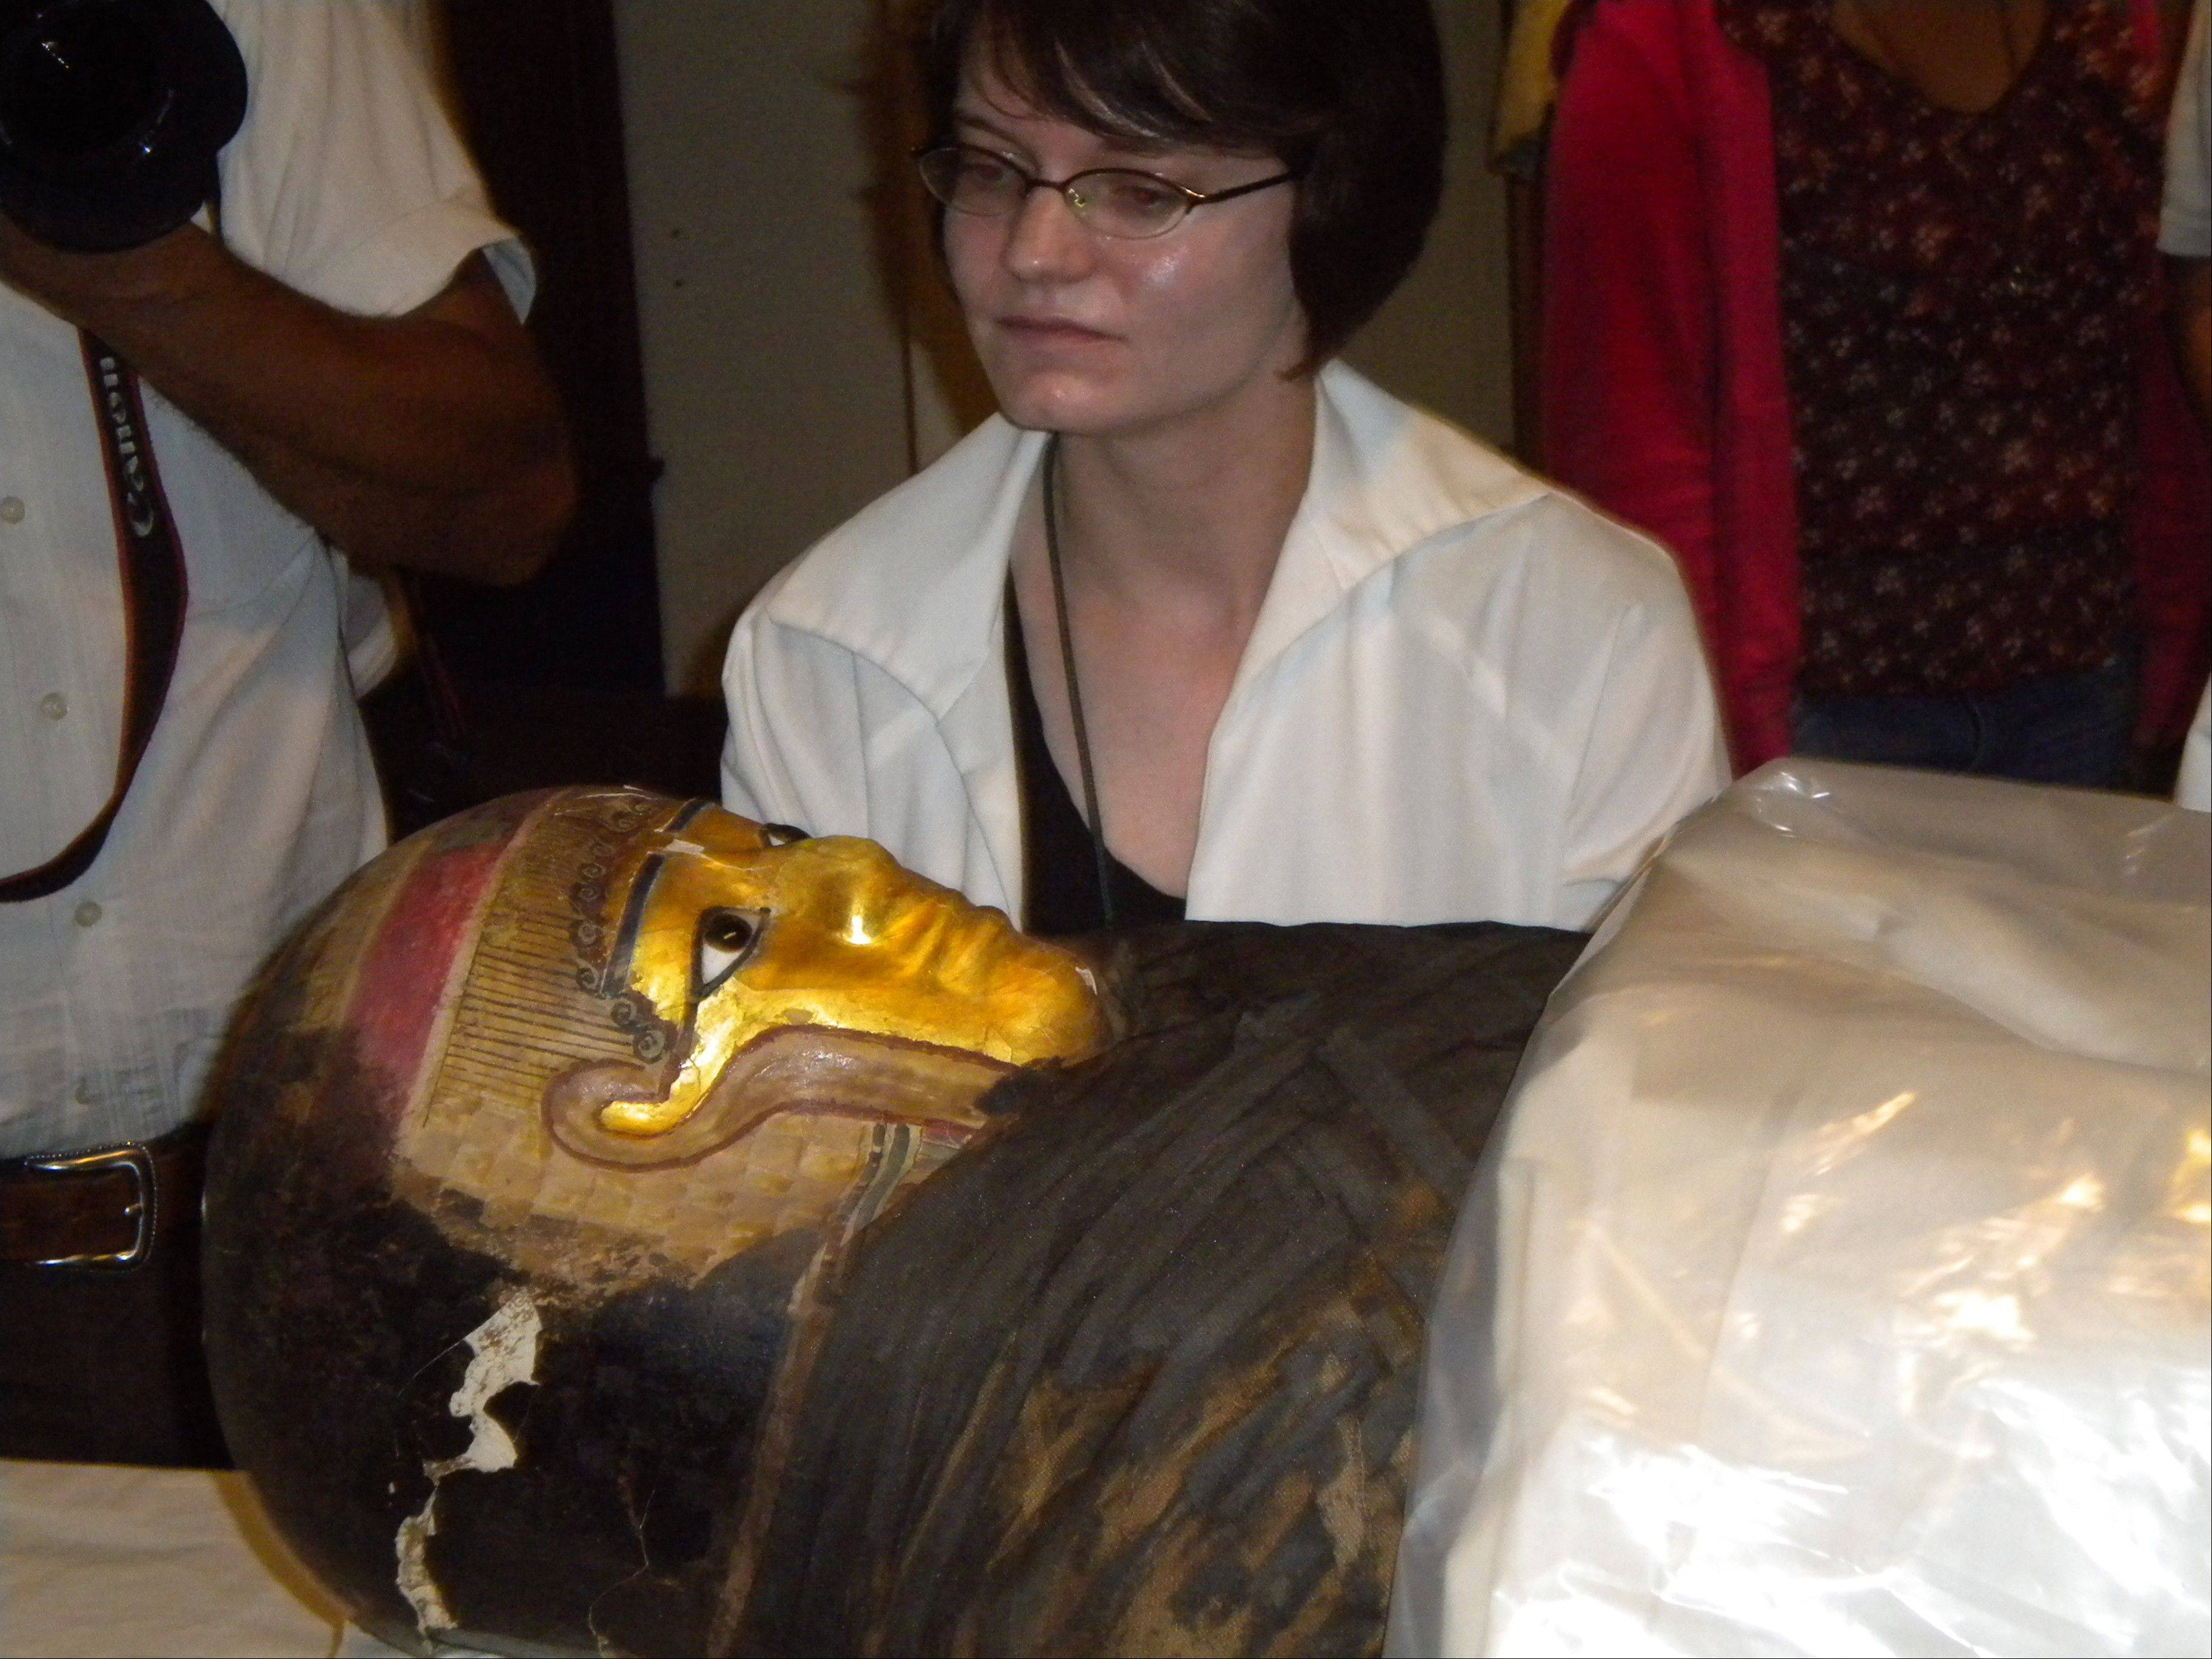 A Field Museum worker helps place a mummy to be scanned by a CT scanner provided by Huntley-based Genesis Medical Imaging Inc.